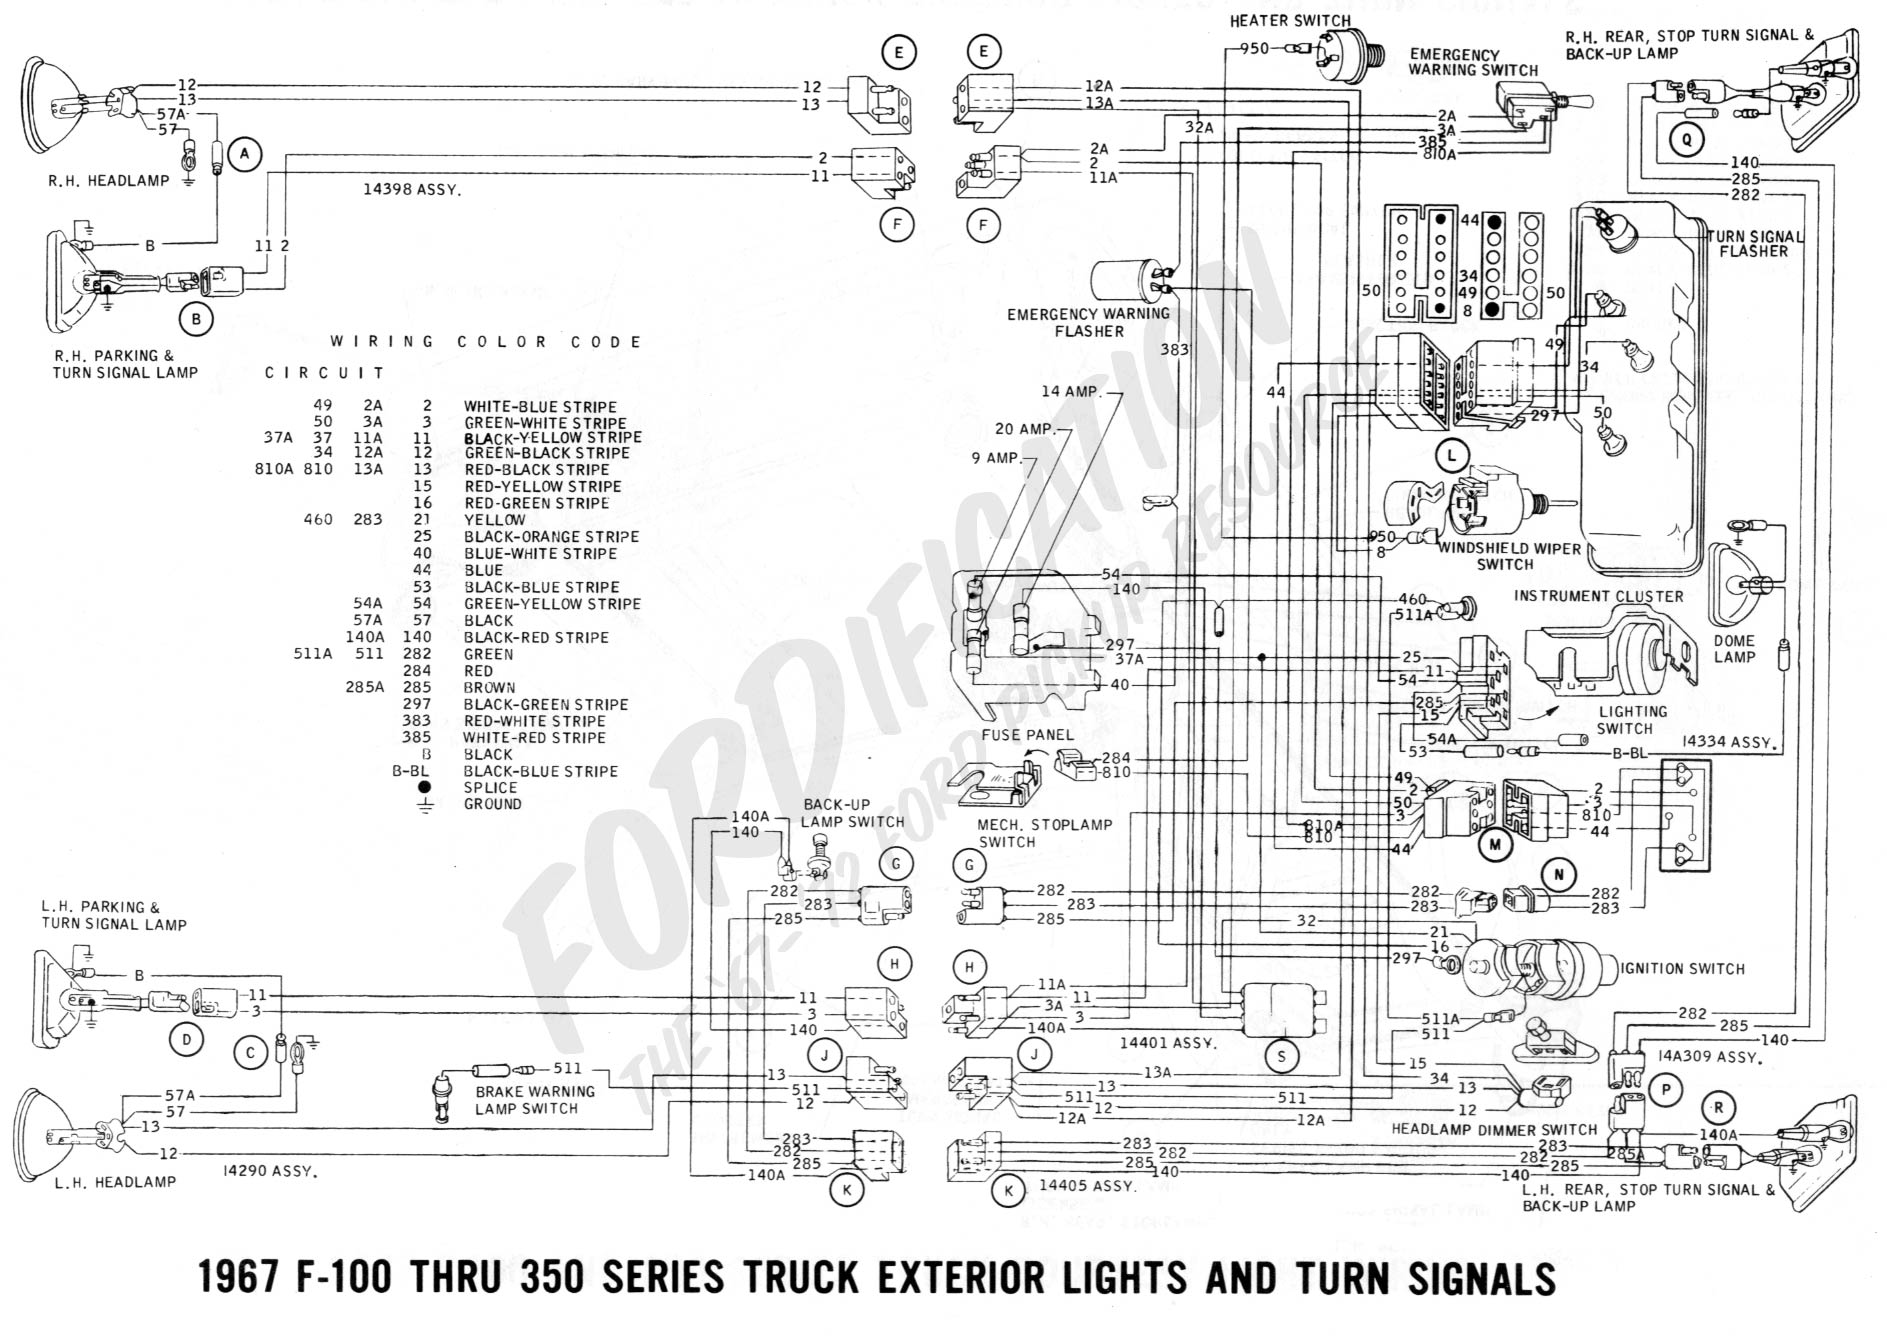 1989 Mustang Dash Wiring Diagram Library. Ford F 250 Turn Signal Wiring Diagram Data Schema 1968 Mustang Starter Solenoid Location 66. Wiring. 89 Mustang Dash Wiring Schematics At Scoala.co